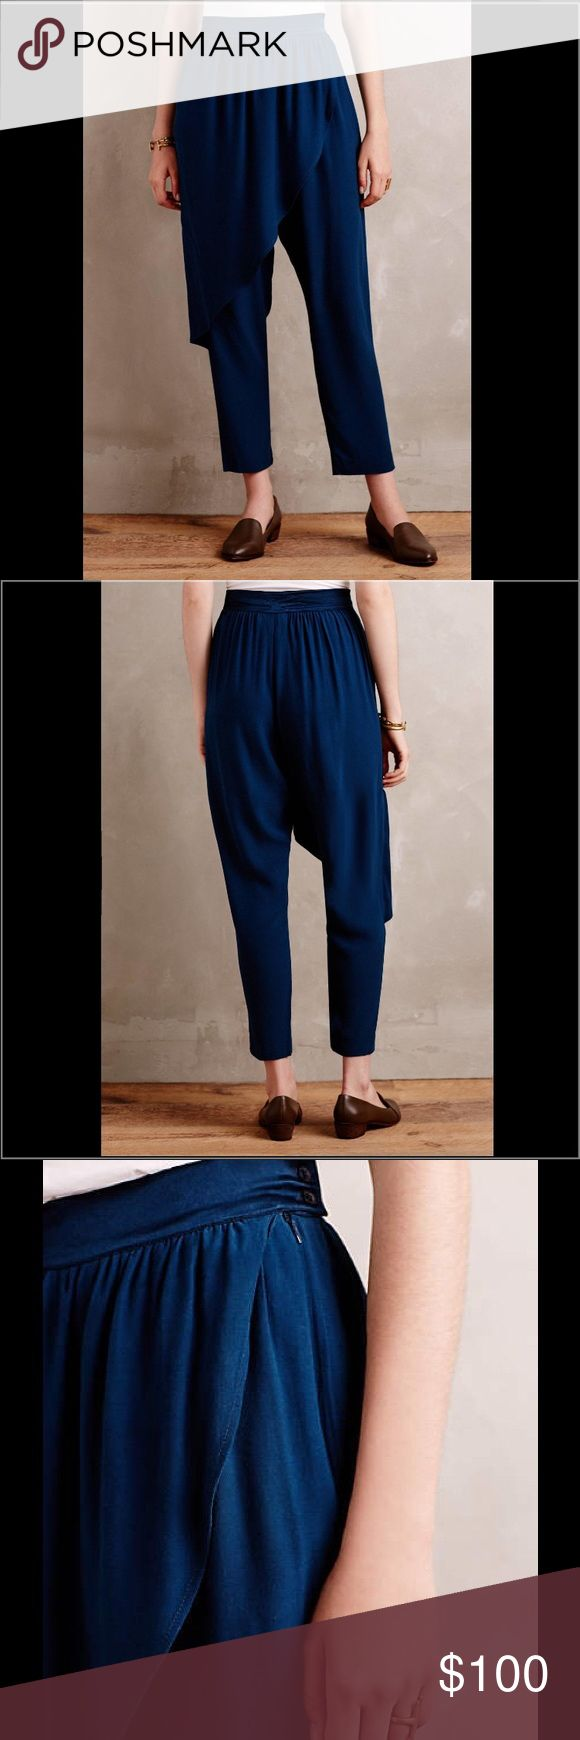 "Anthropologie Angelica Harem Pants The most unique pants you'll own! The granddaughter of an Italian tailor & daughter of an interior designer, Corey Lynn Calter was born to create. Experienced in opera houses, Broadway shows & New York's punk scene, her eponymous line is defined by prints, flattering cuts & punchy hues that are inspired by her vast & varied background. Harem silhouette and satin waistband and lined skirt flap. Side pockets and side zip and tabbed button closure. 27"" inseam…"